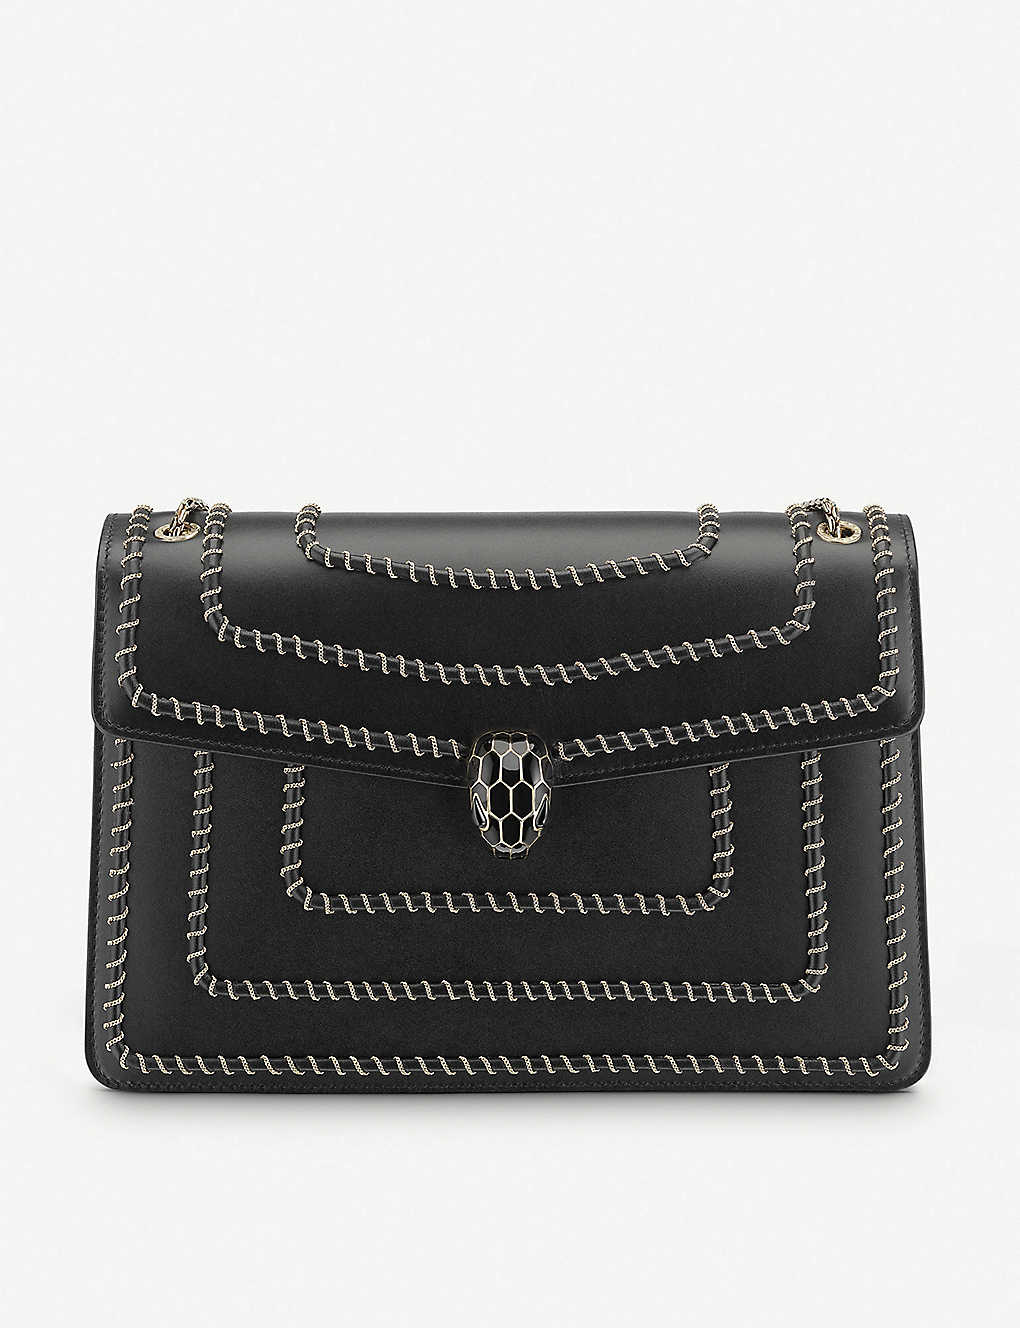 BVLGARI: Serpenti Forever woven chain leather shoulder bag